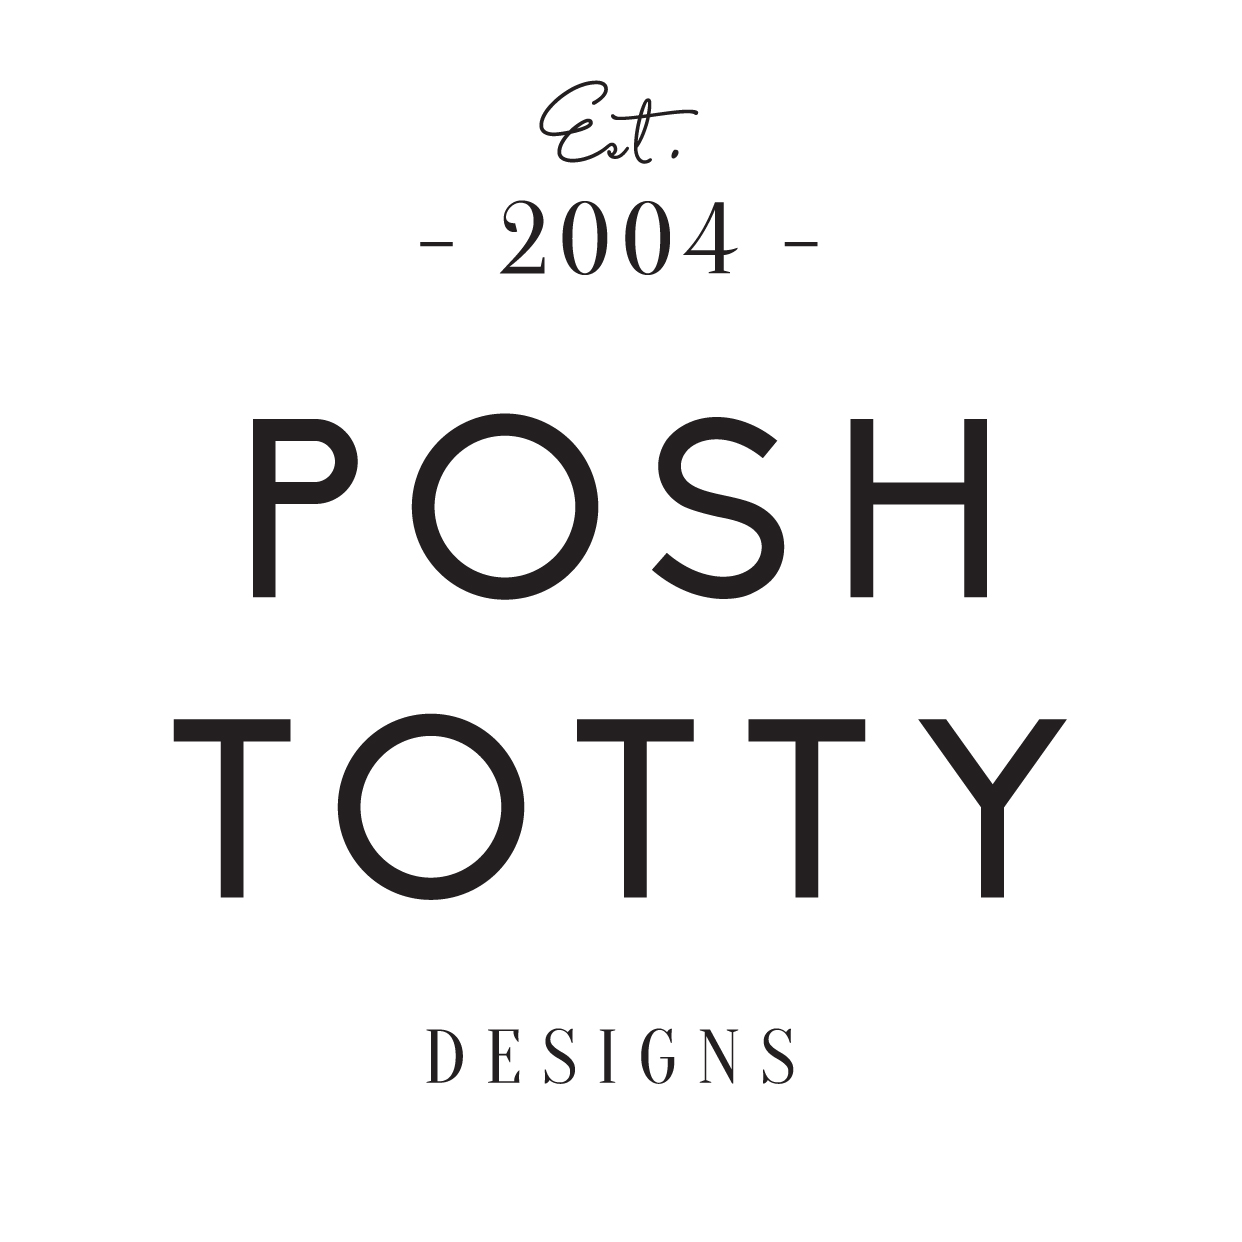 posh totty designs | storefront | notonthehighstreet com